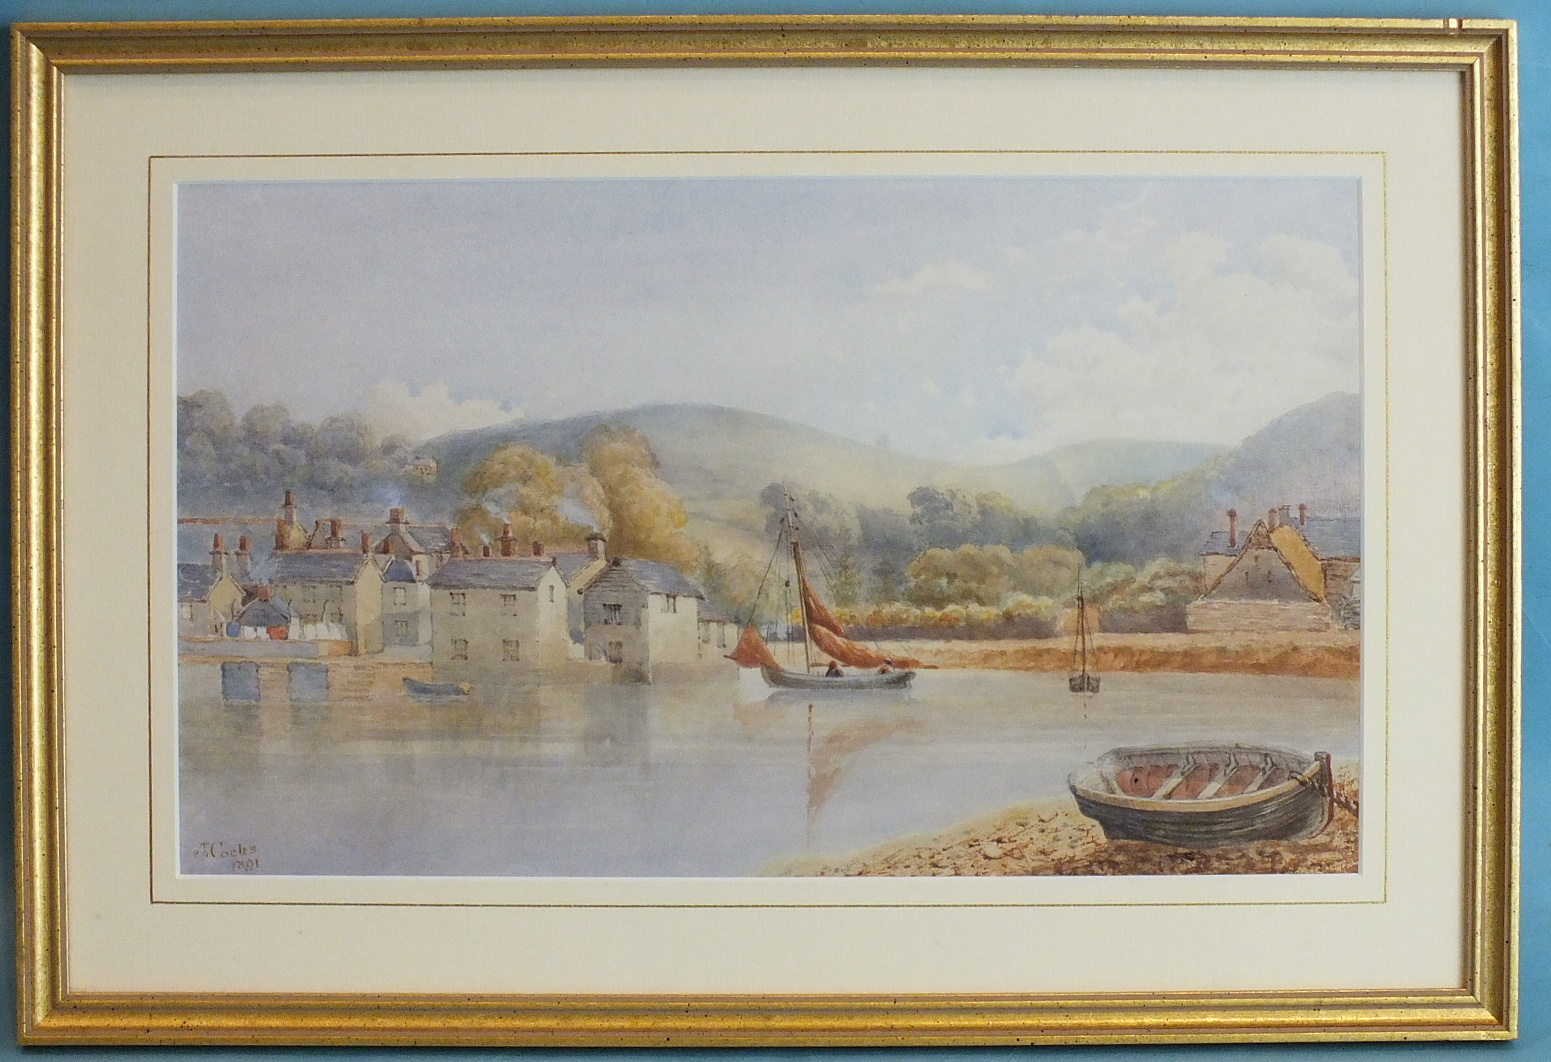 Lot 86 - J Cocks ROWING TO THE CASTLE LODGE, HOOE LAKE Watercolour, signed and dated 1891, 22.5 x 37cm,